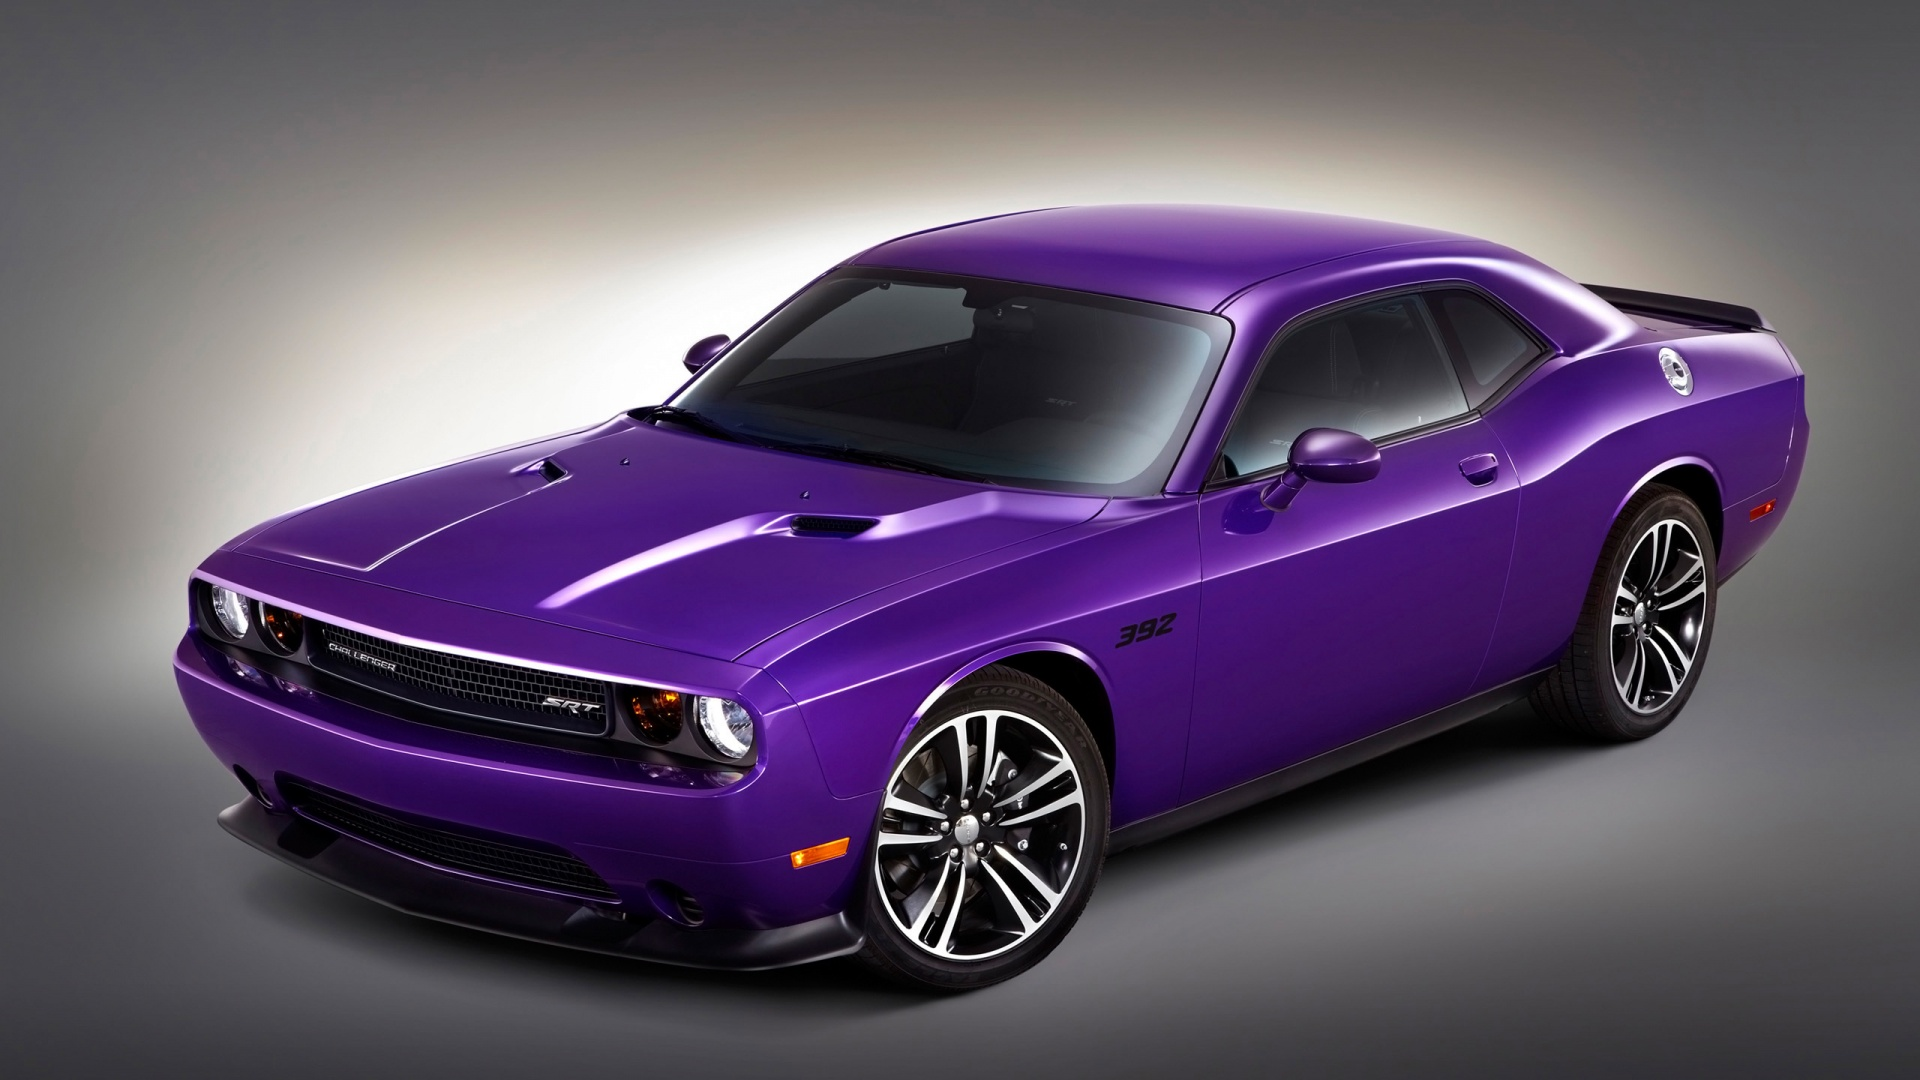 2014 Dodge Challenger SRT Wallpaper HD Car Wallpapers 1920x1080